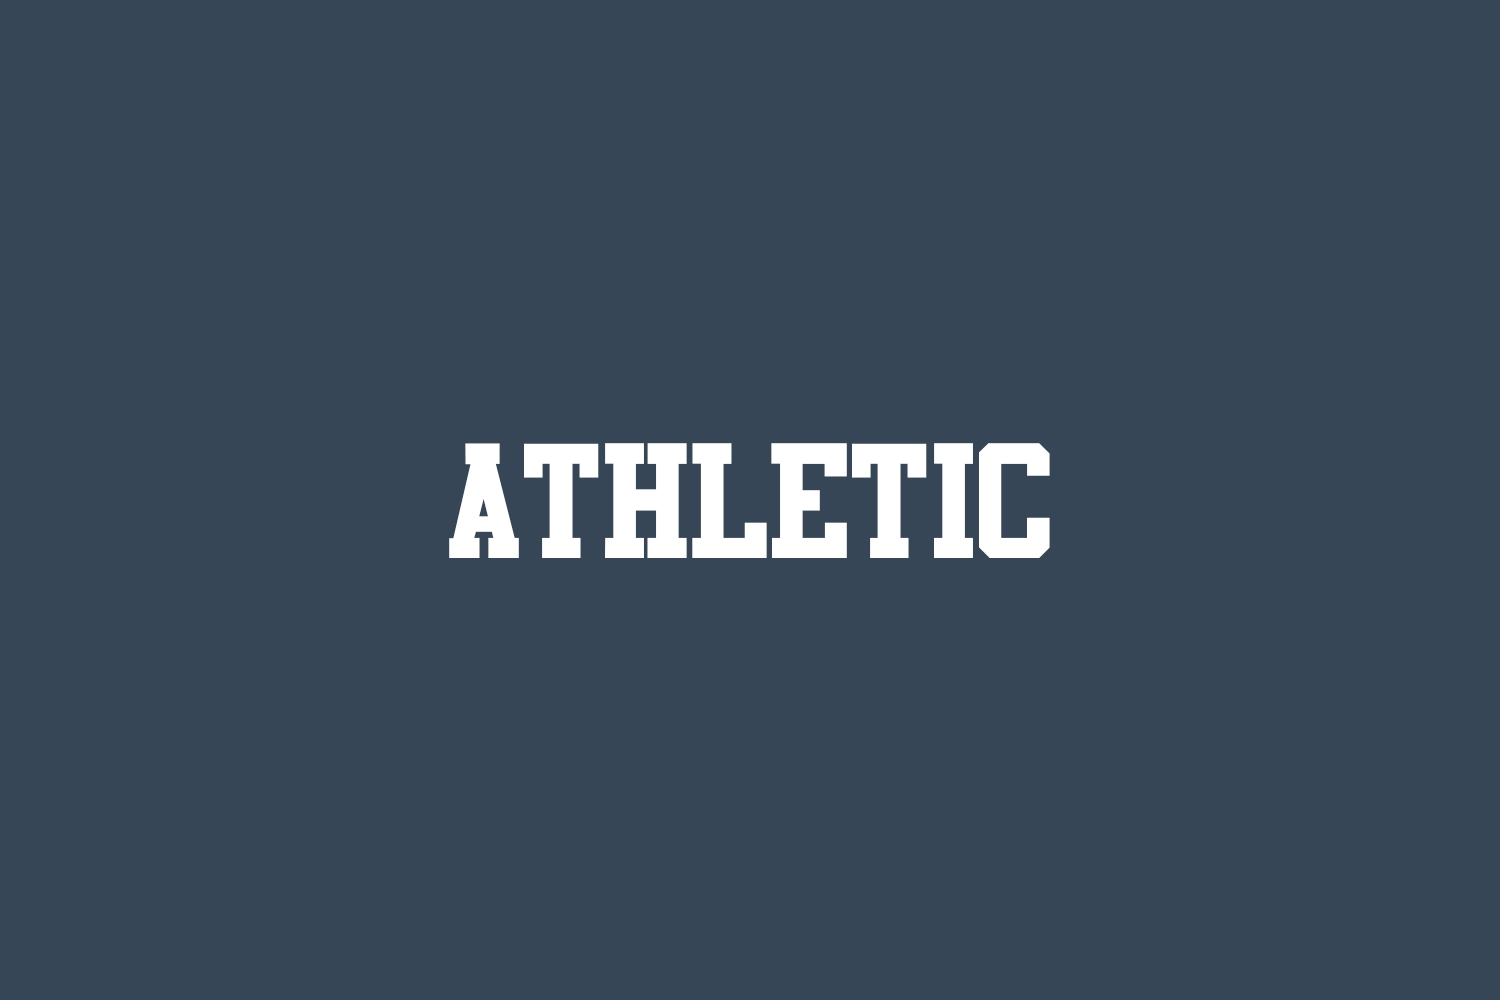 Athletic Free Font